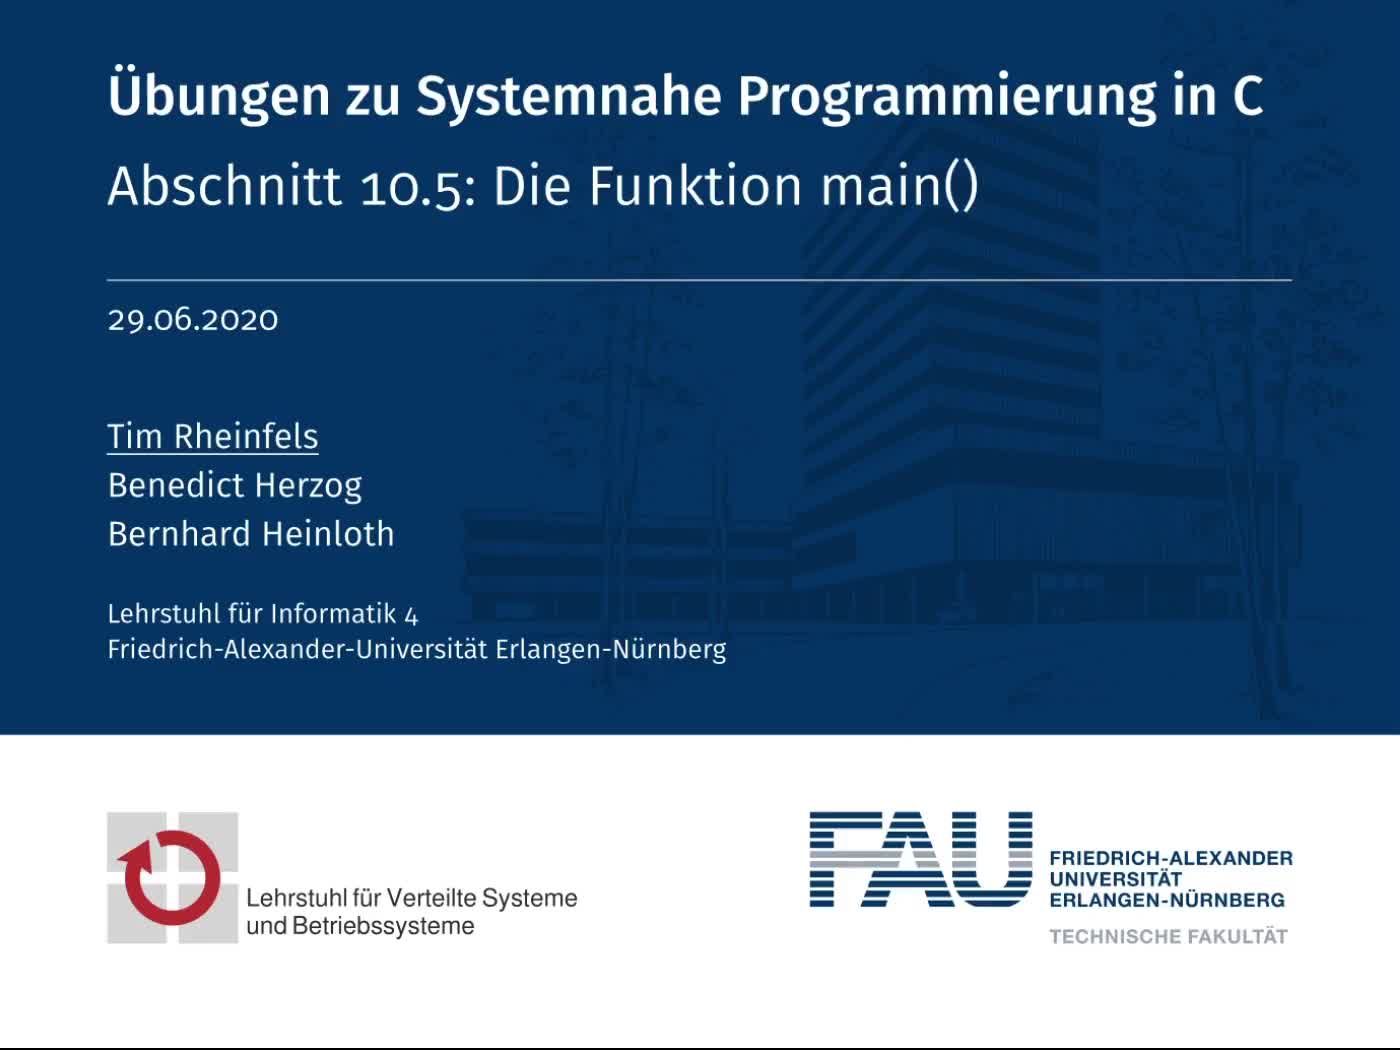 10.5: Die Funktion main() preview image